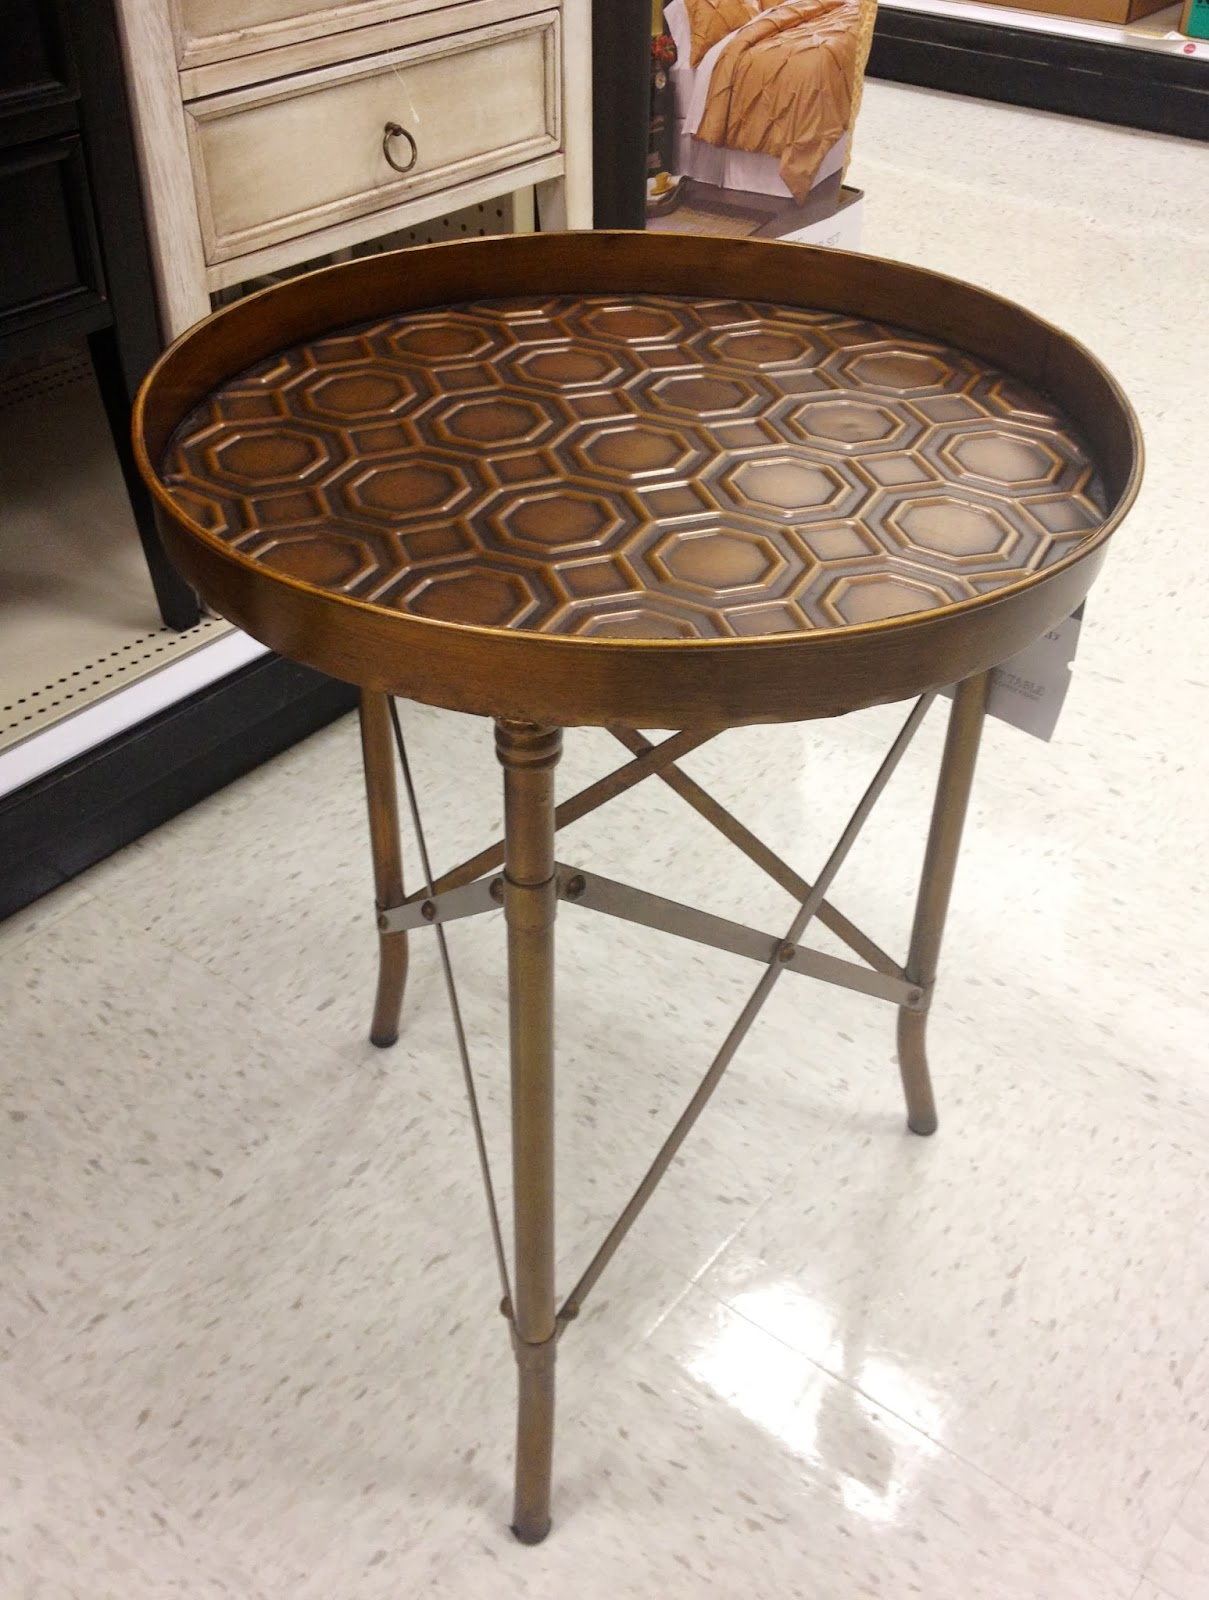 tables such great color choices threshold stamped metal accent table